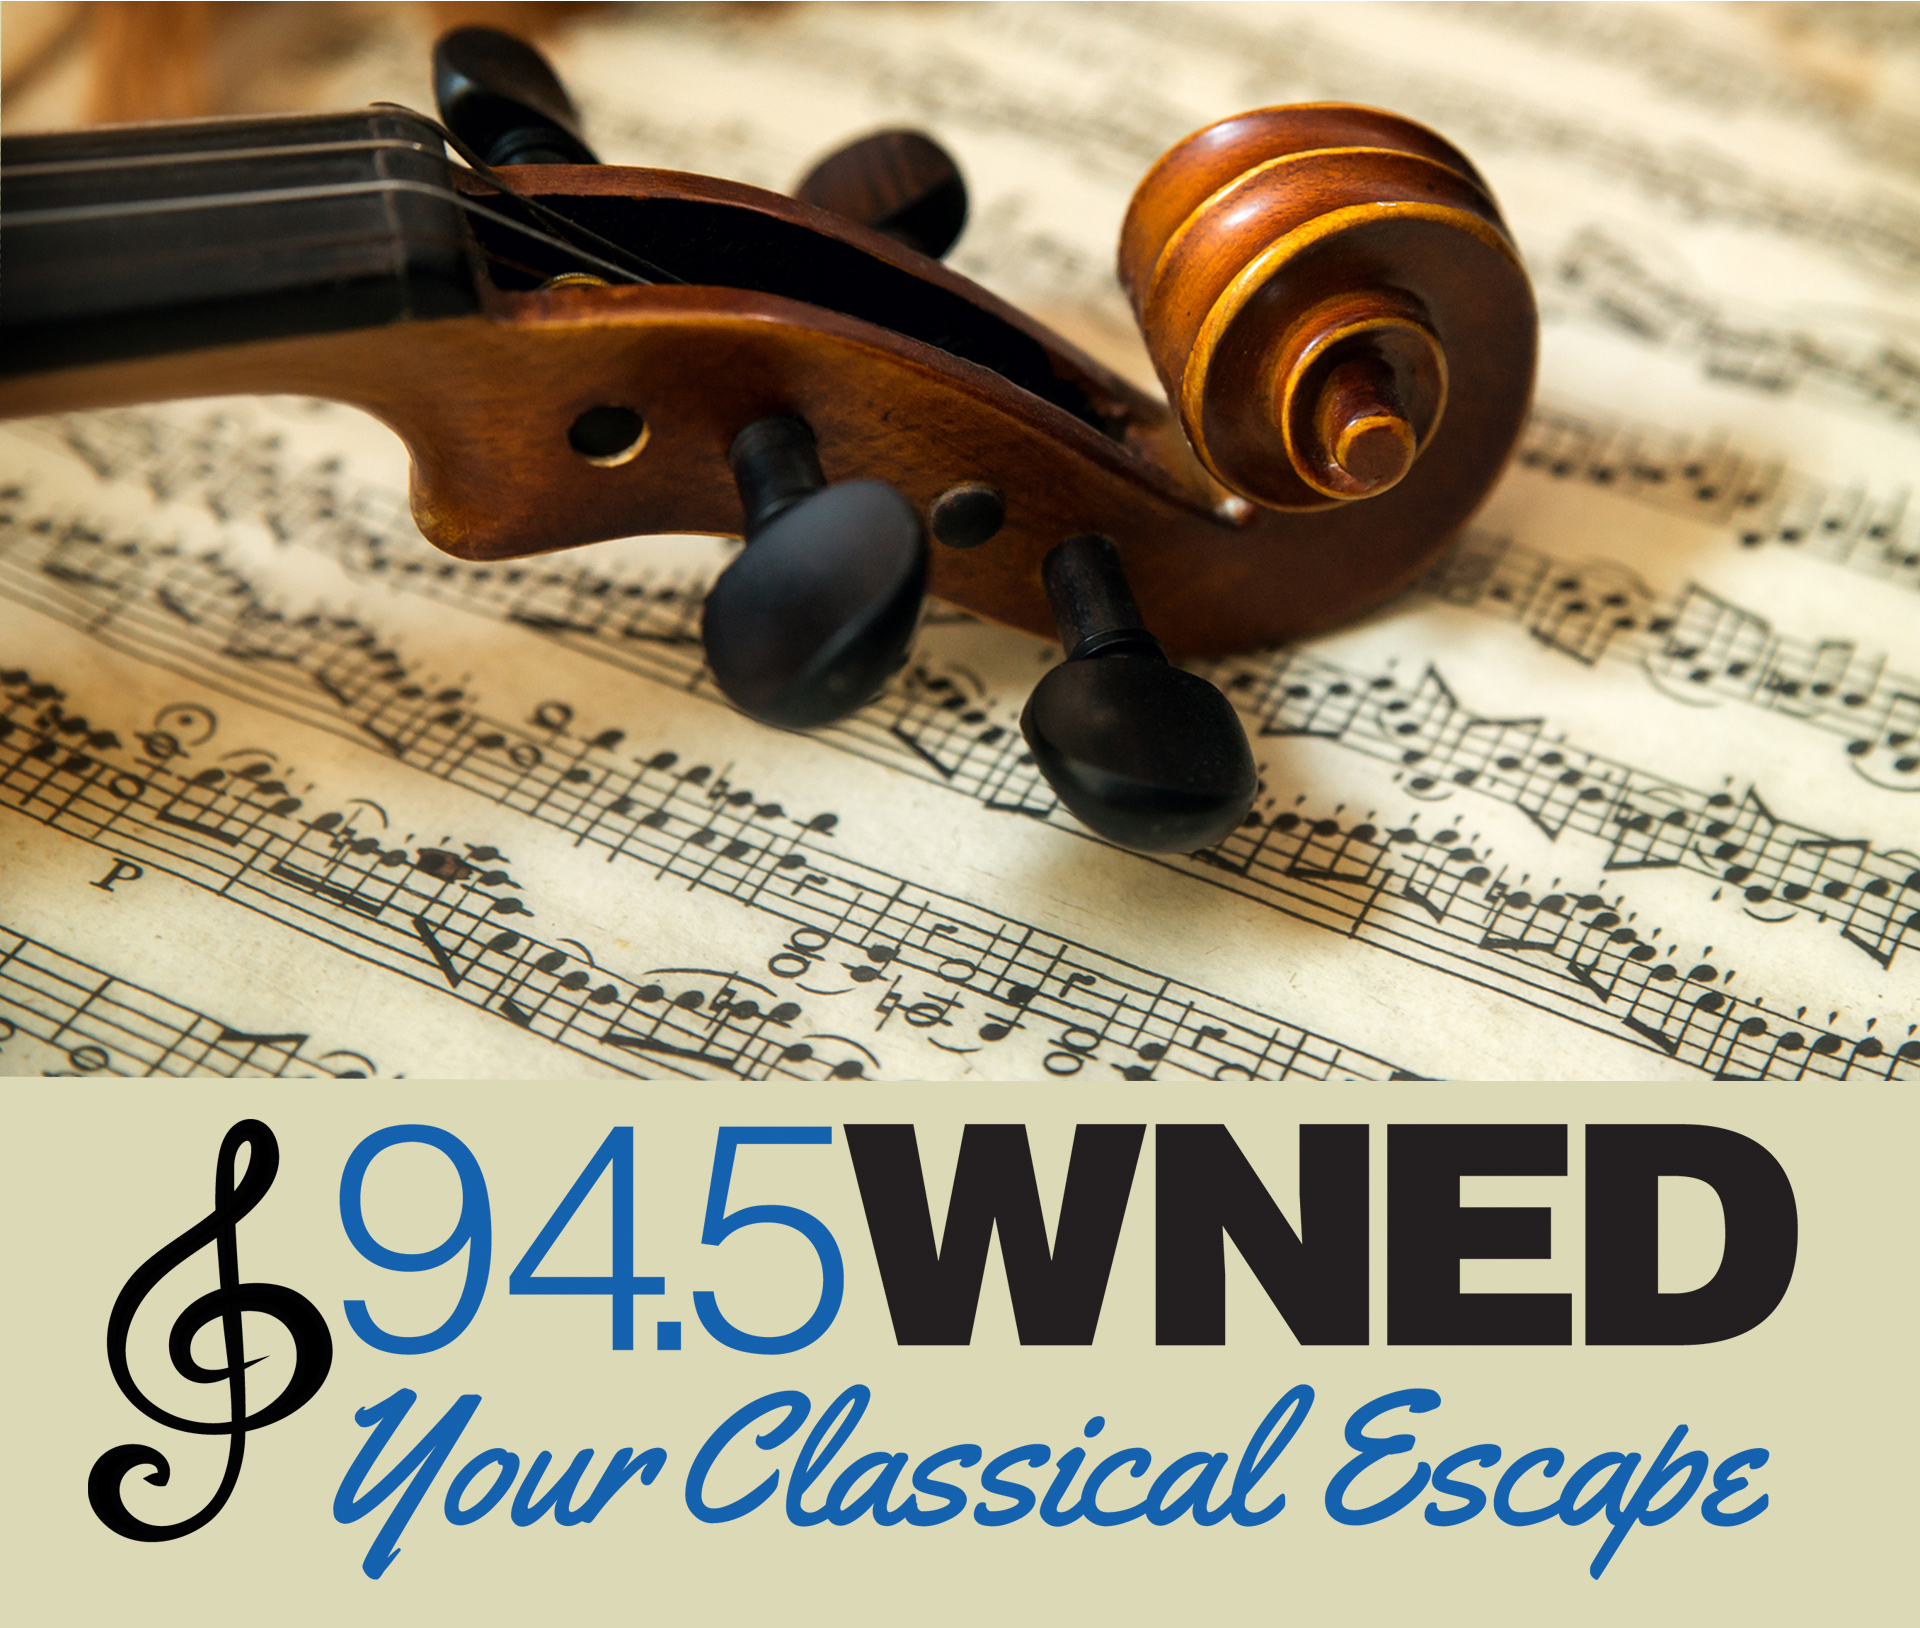 WNED Classical 94.5, Your Classical Escape